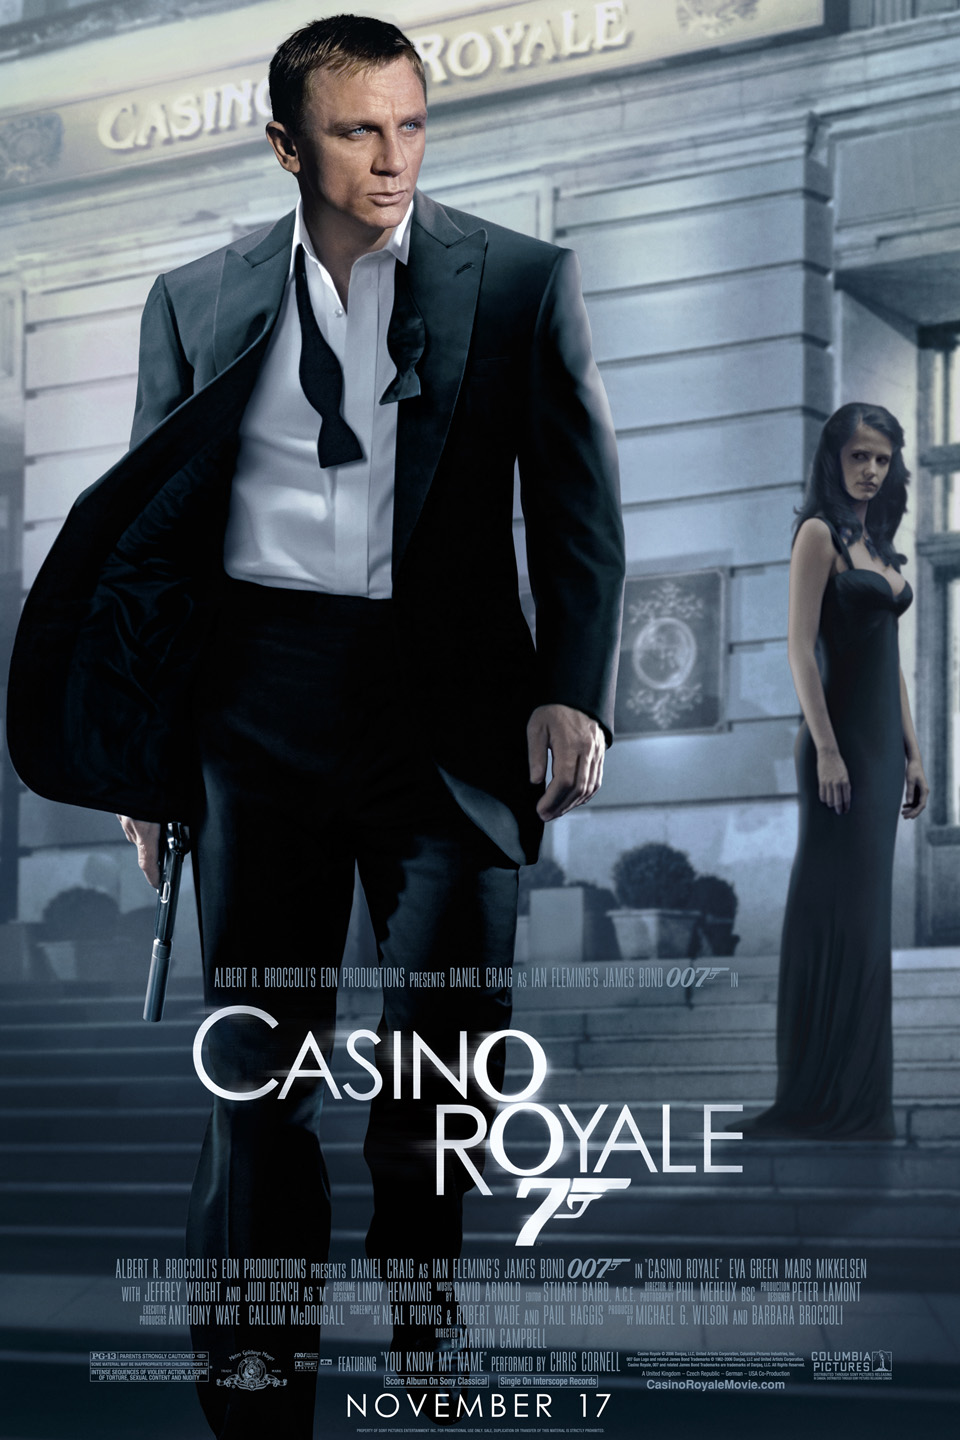 Tag 300mb Top Online Roulette Casino Sites In Canada